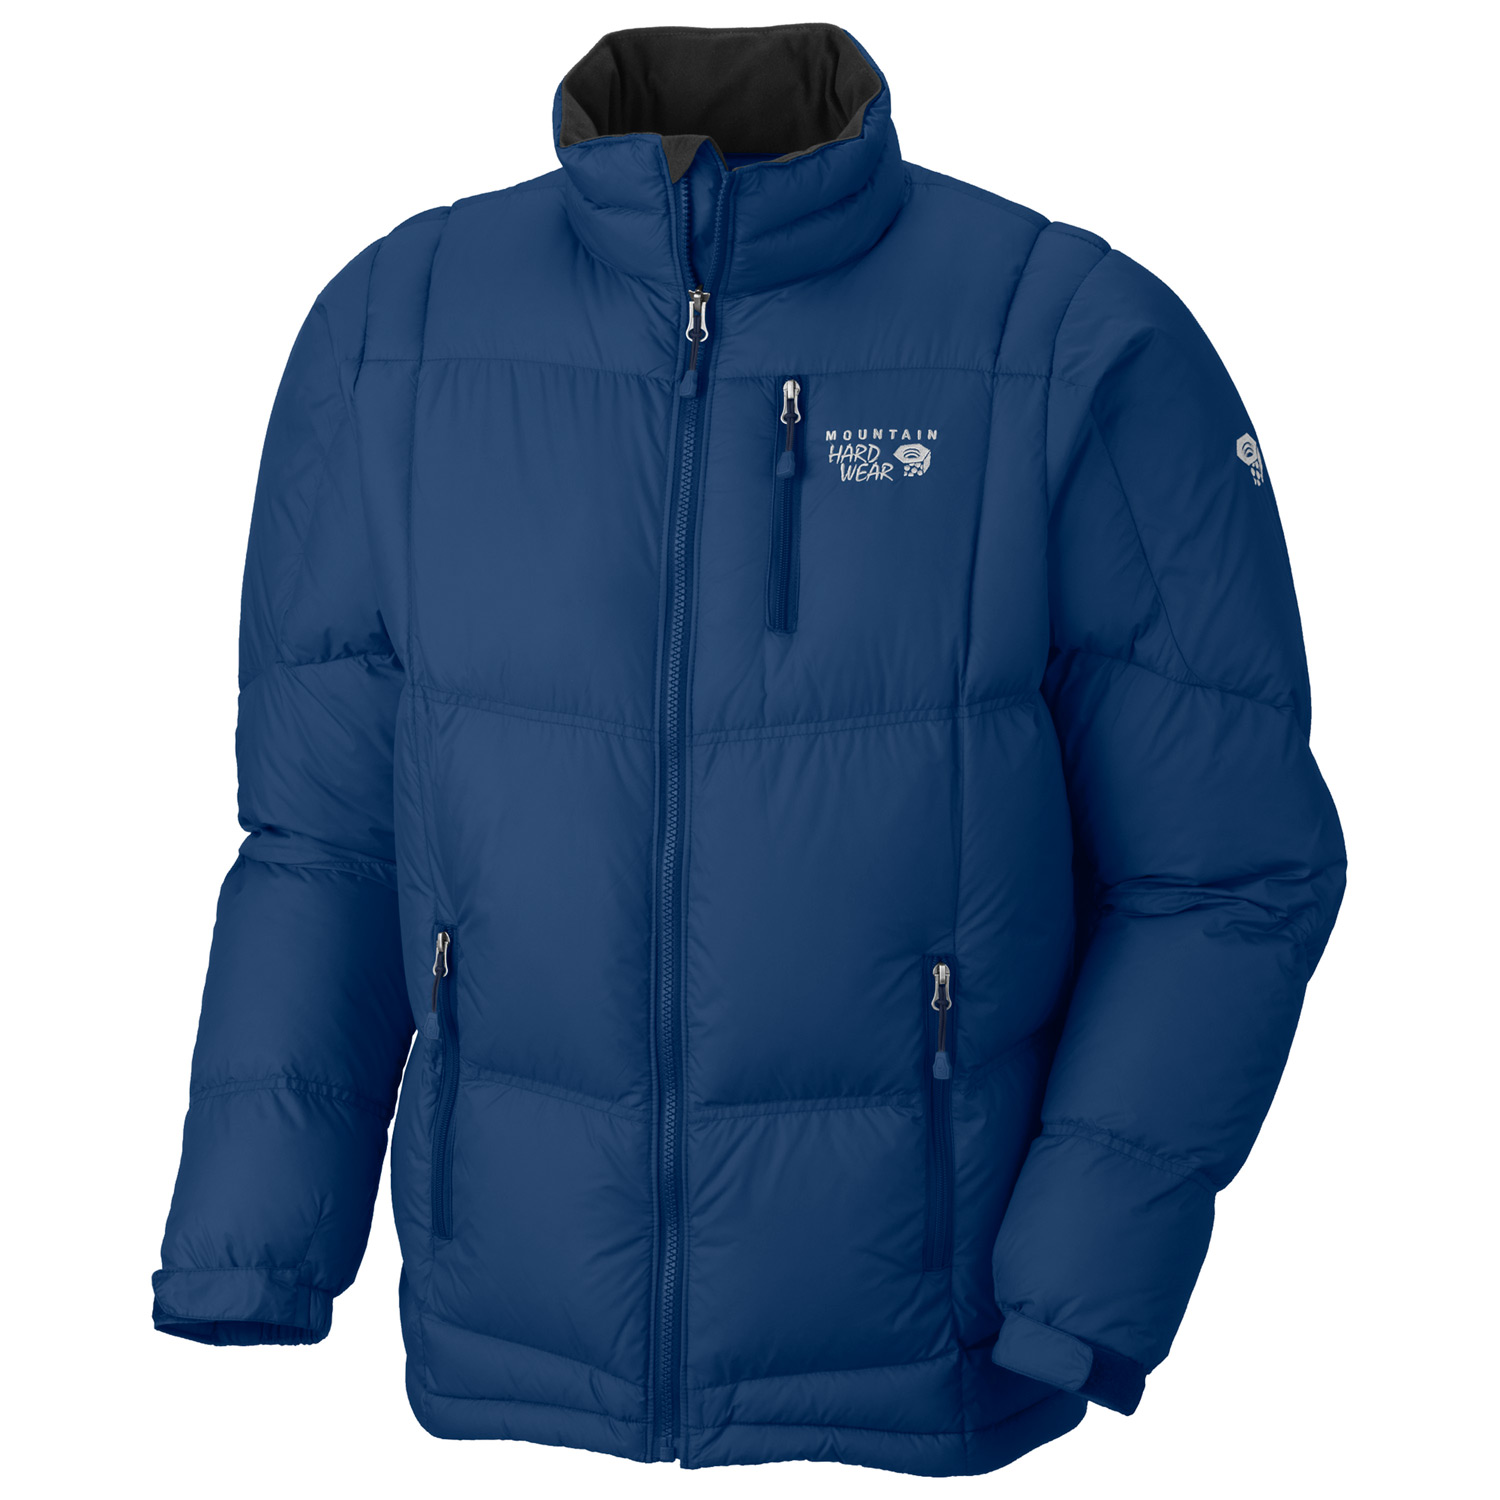 Stay warm in this midweight, 650-down filled jacket. Perfect under a shell on stormy days or on its own on chilly nights. This midweight down jacket is perfect for layering or as a stand alone piece on cold days around town.Key Features of the Mountain Hardwear Lodown Jacket: 30D Micro Taffeta (100% nylon) 650-Fill Goose DownInsulated with lofty and warm 650-fill goose down Zip handwarmer pockets Dual hem drawcords seal in warmth Micro-Chamois-lined chin guard prevents zipper chafe - $116.95